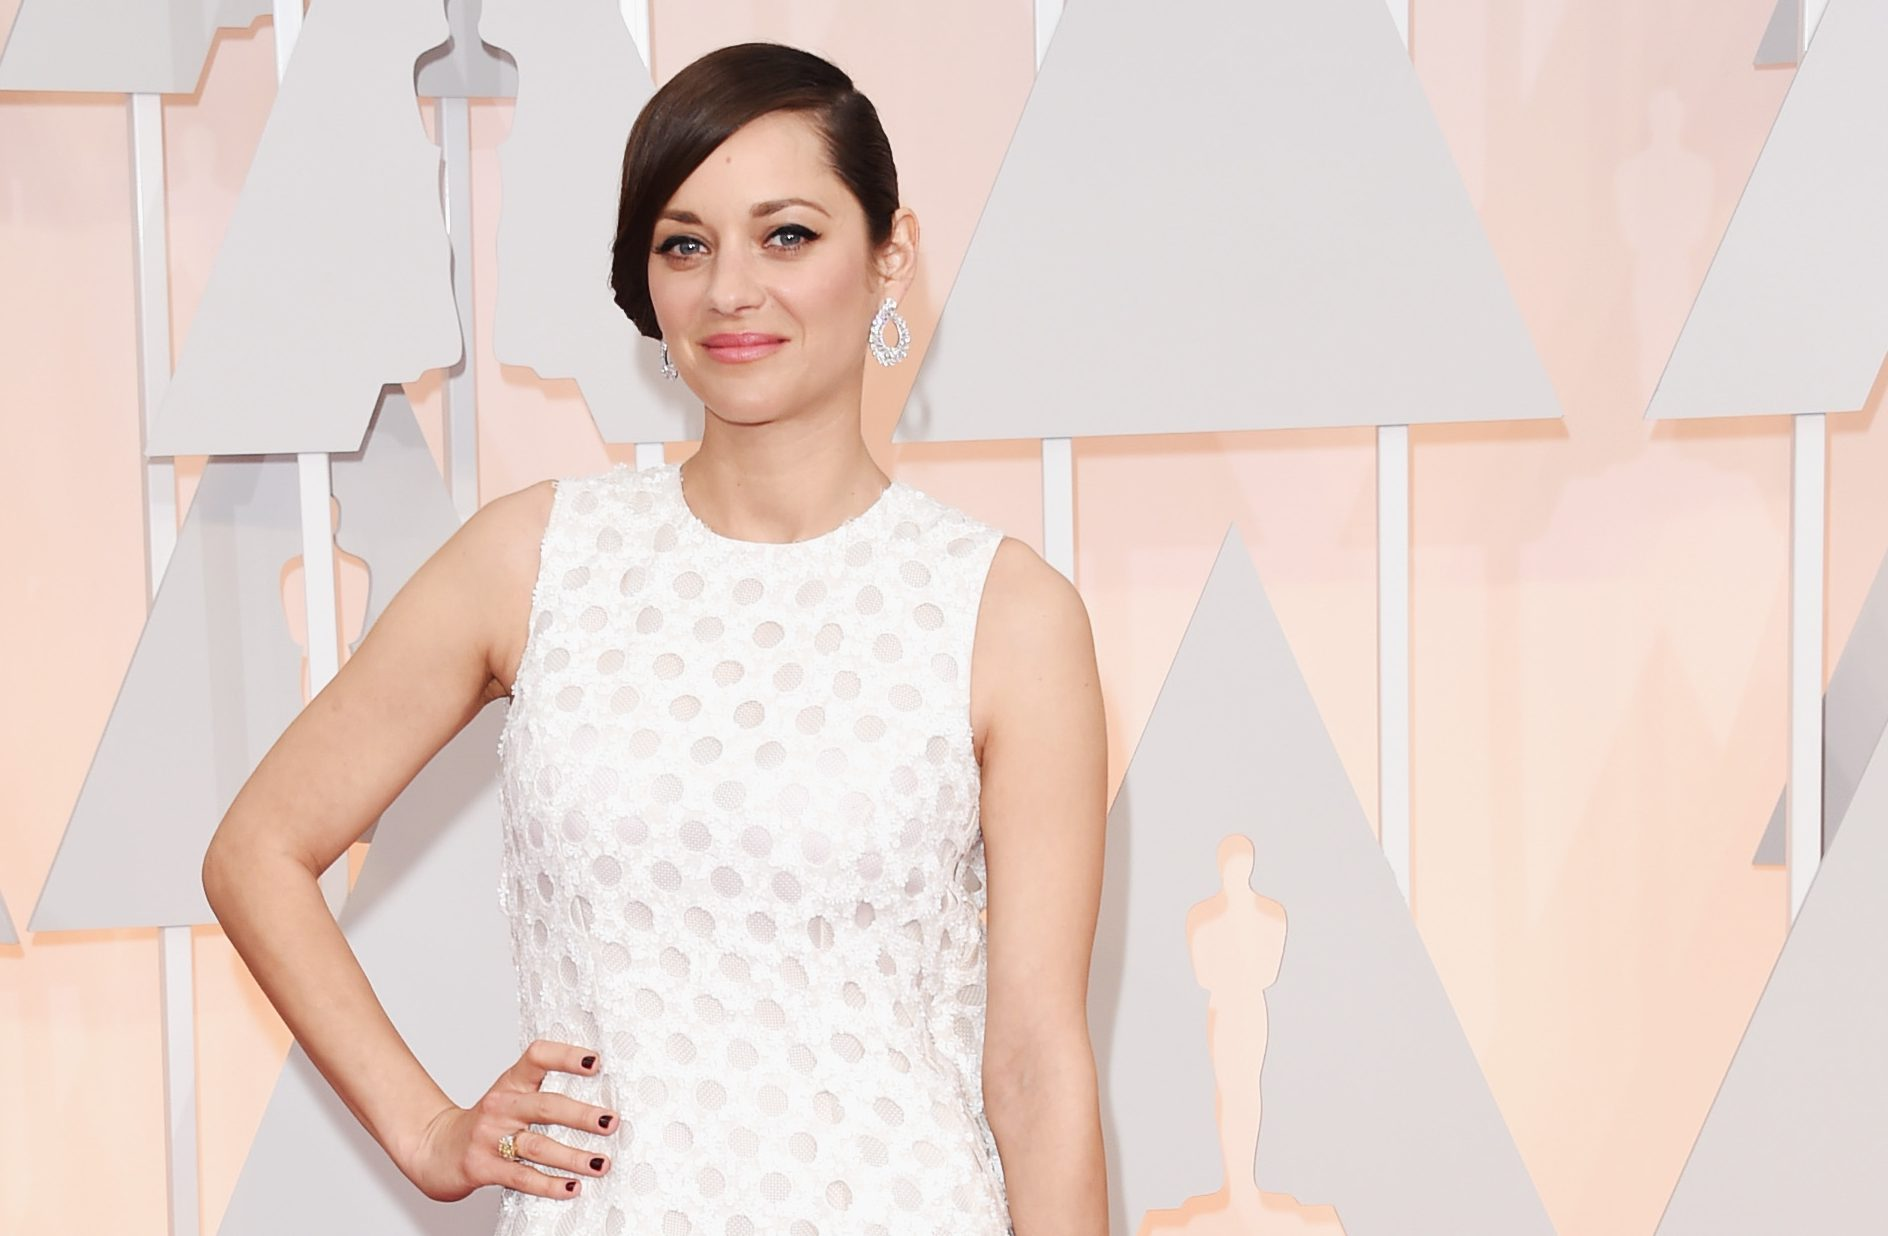 Marion Cotillard has hit back at rumours she had an affair with Bard Pitt (Picture: Getty Images)